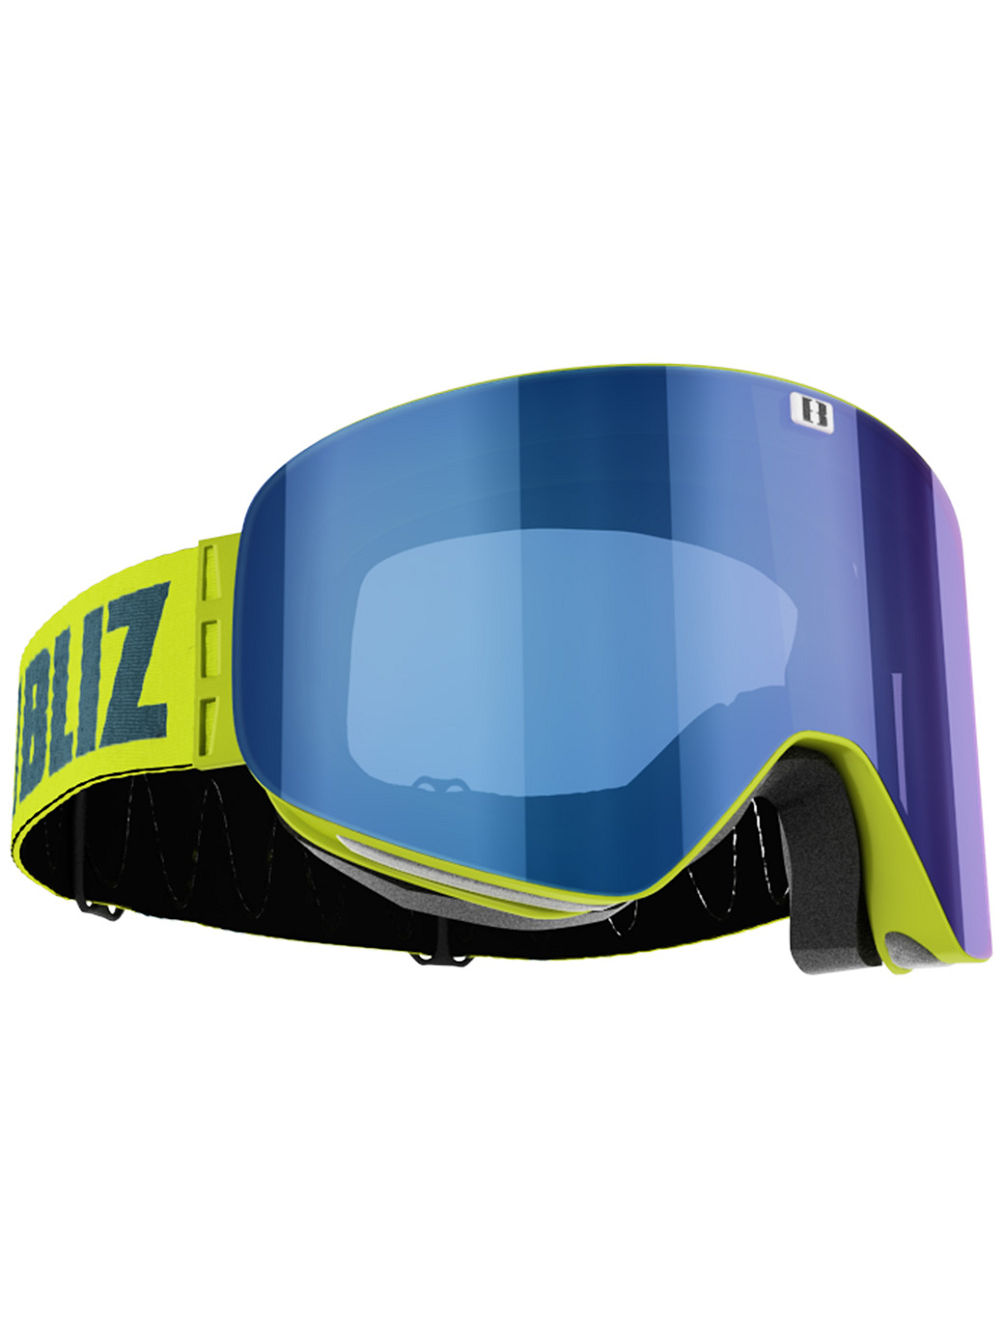 bliz-protective-sports-gear-flow-lime-green-bonus-lens